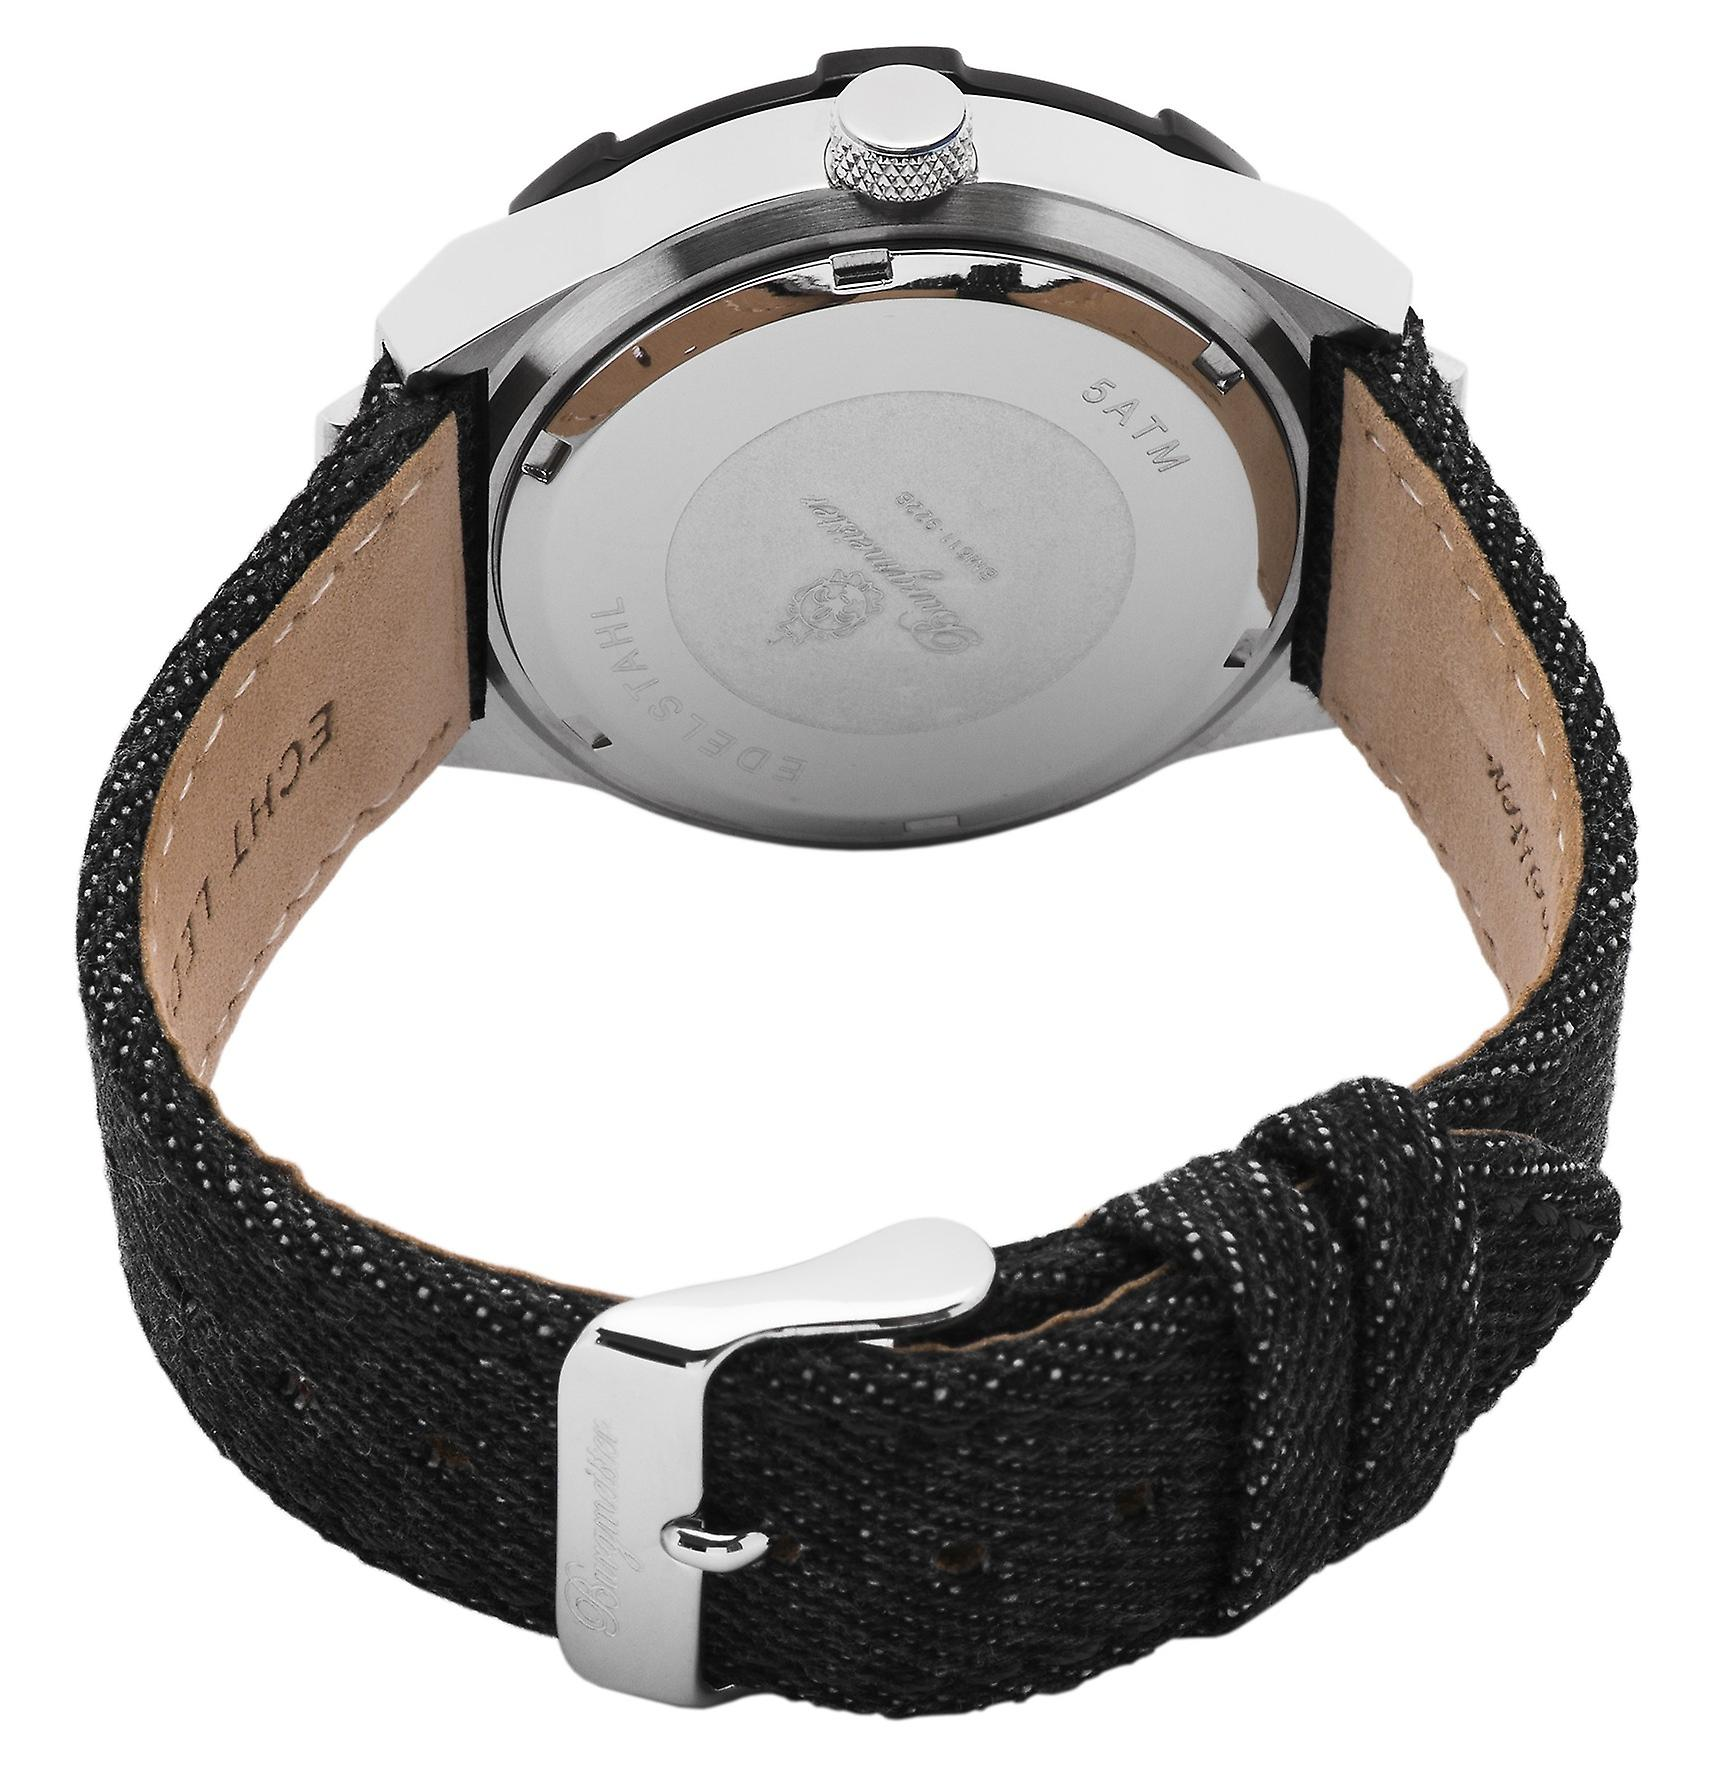 Burgmeister ladies quartz watch Atlanta, BM611-922B